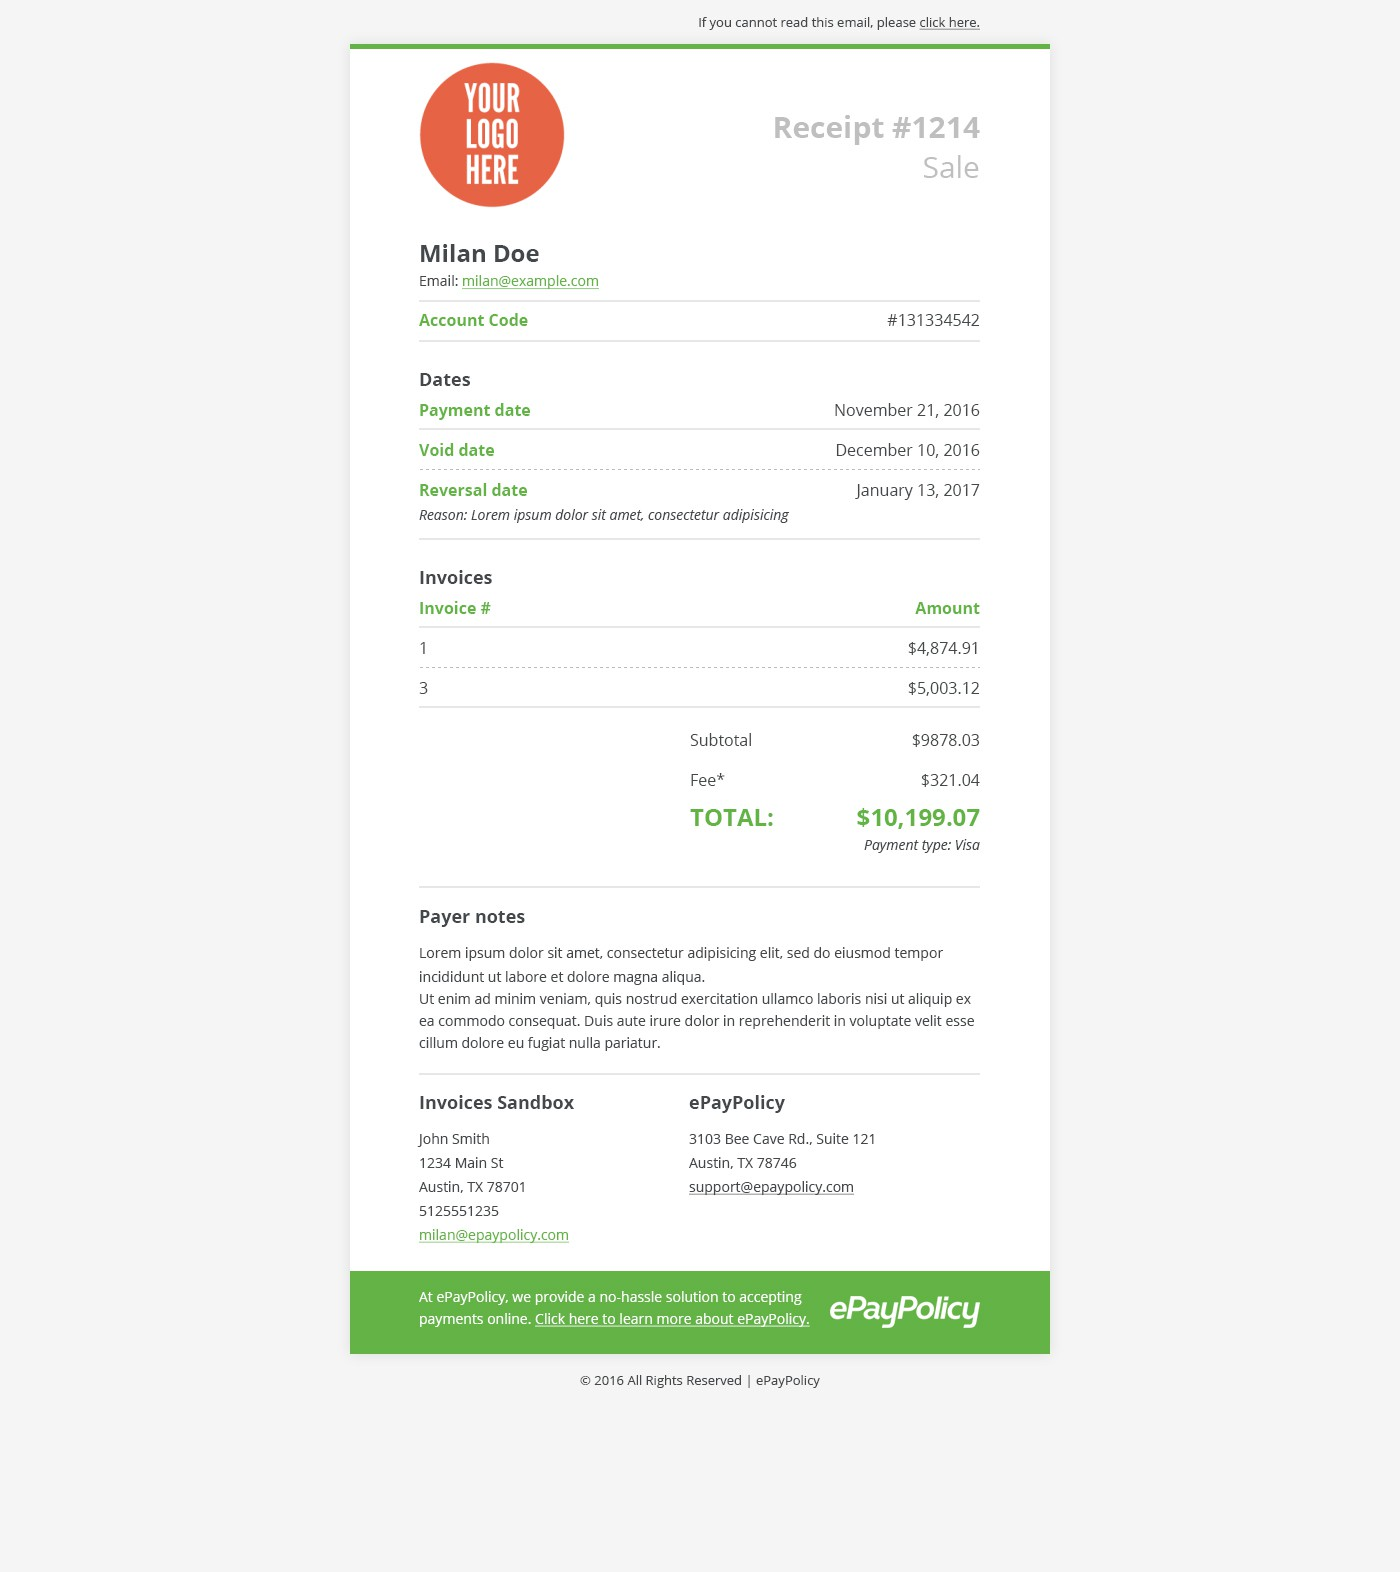 We need an email friendly e-receipt once a payment has been processed